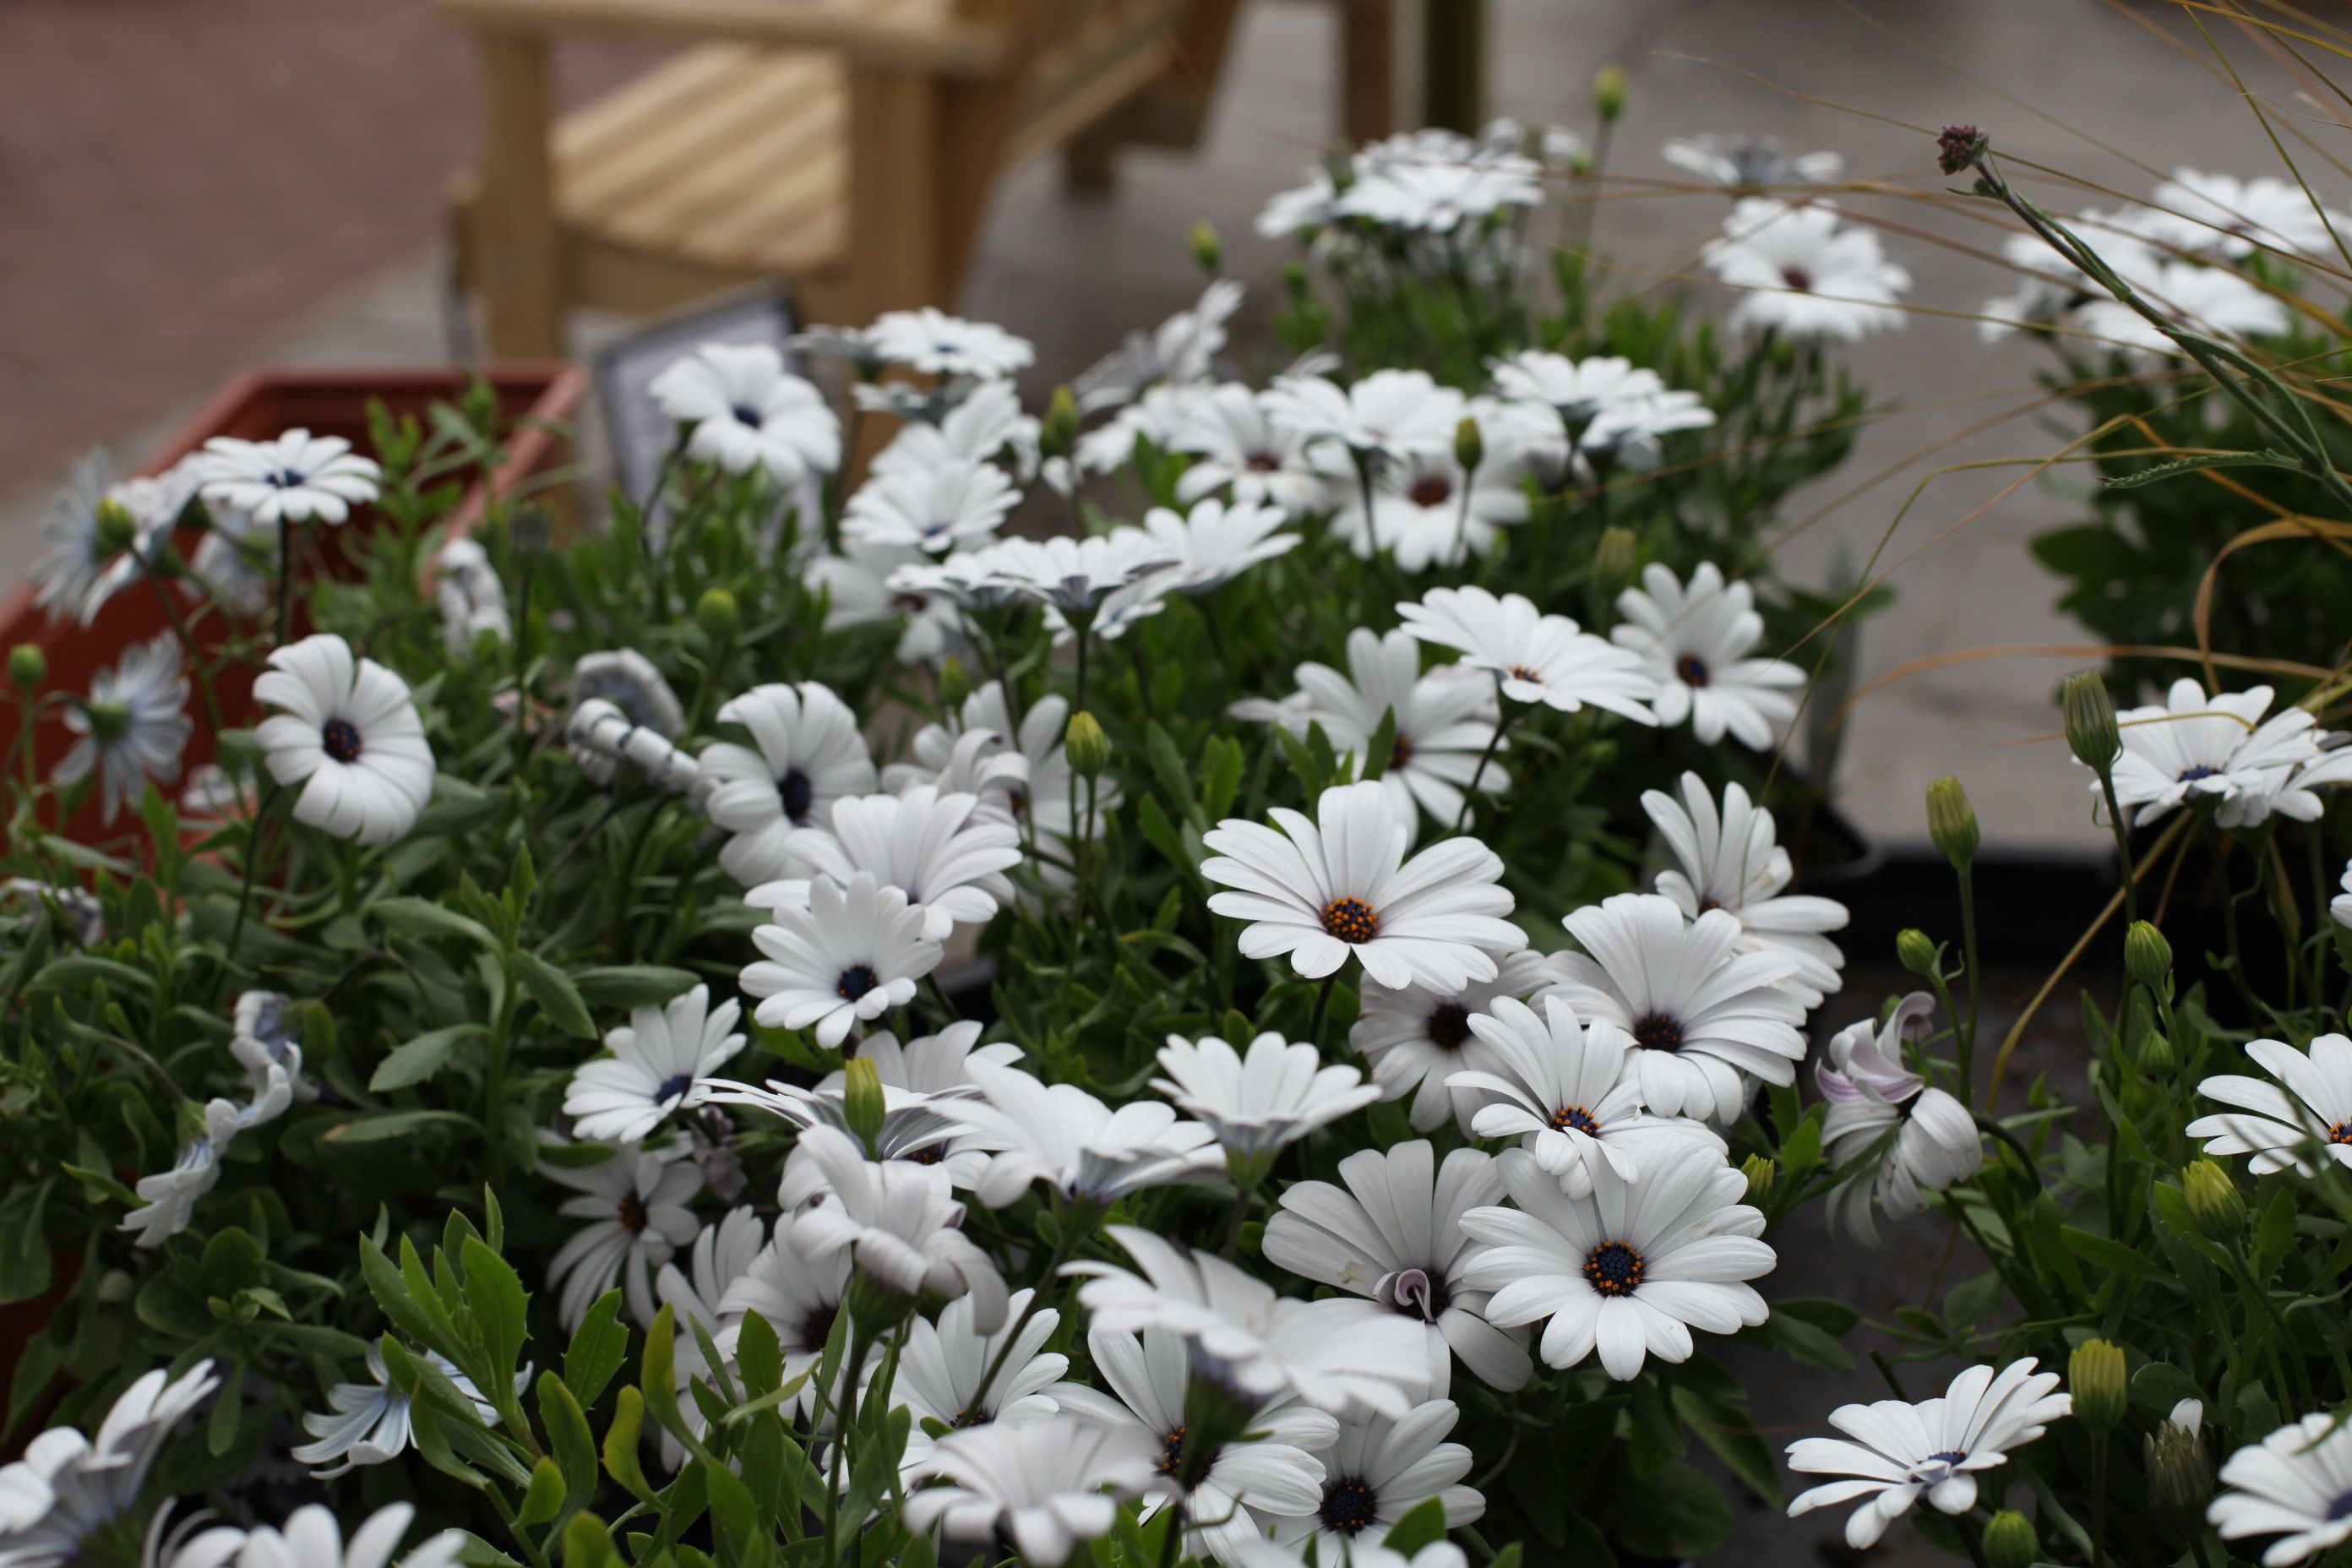 Osteospermum Zanzibar White Masses Of Bright White Daisy Like